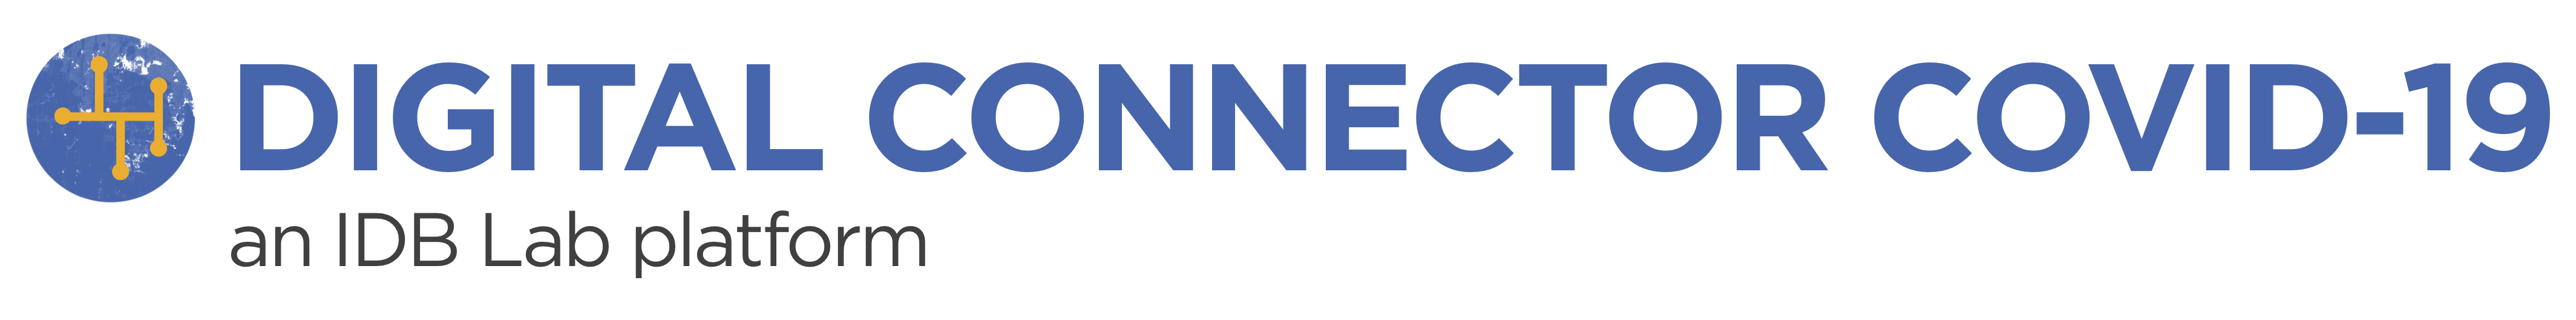 Digital connector logo